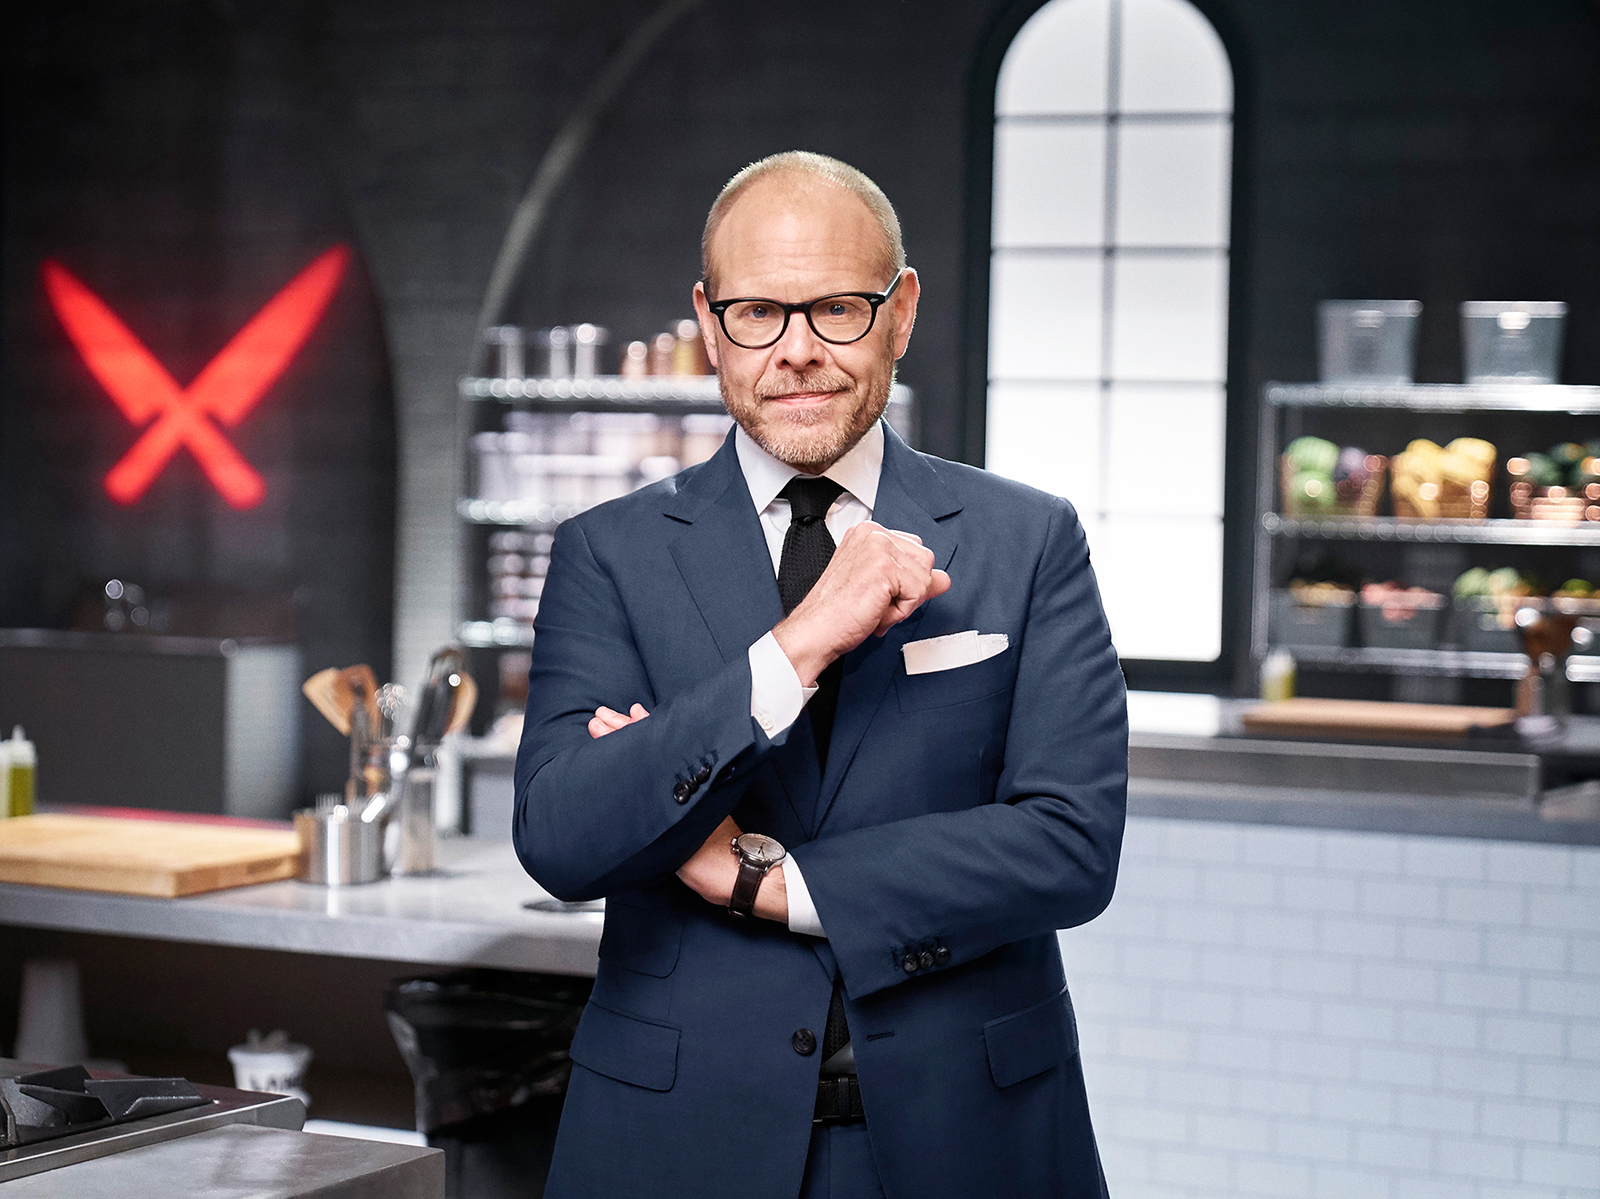 Next Round of 'Iron Chef Gauntlet' to Premiere in April